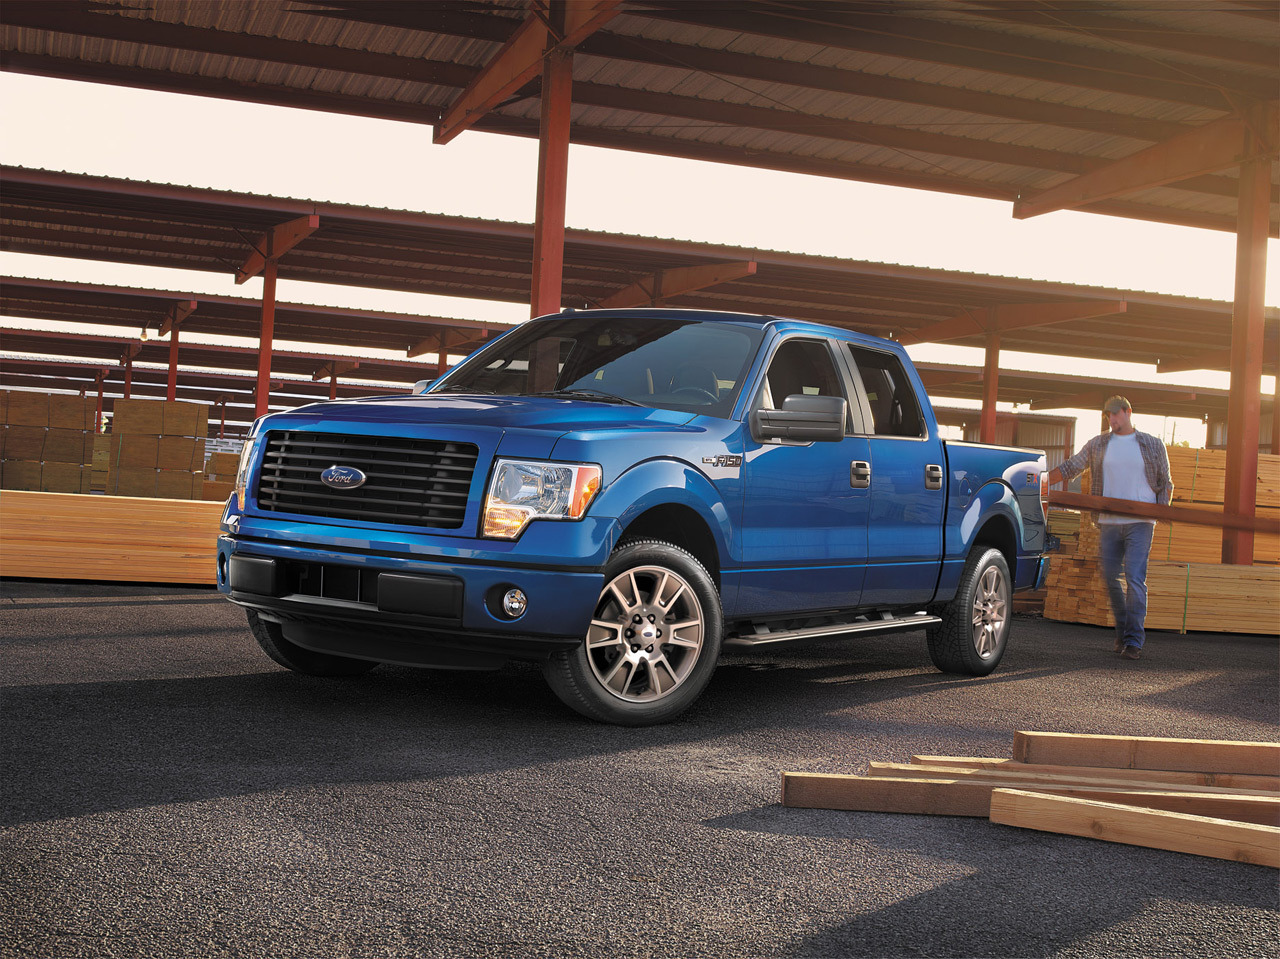 2014 ford f 150 stx supercrew sport package photo gallery autoblog. Black Bedroom Furniture Sets. Home Design Ideas